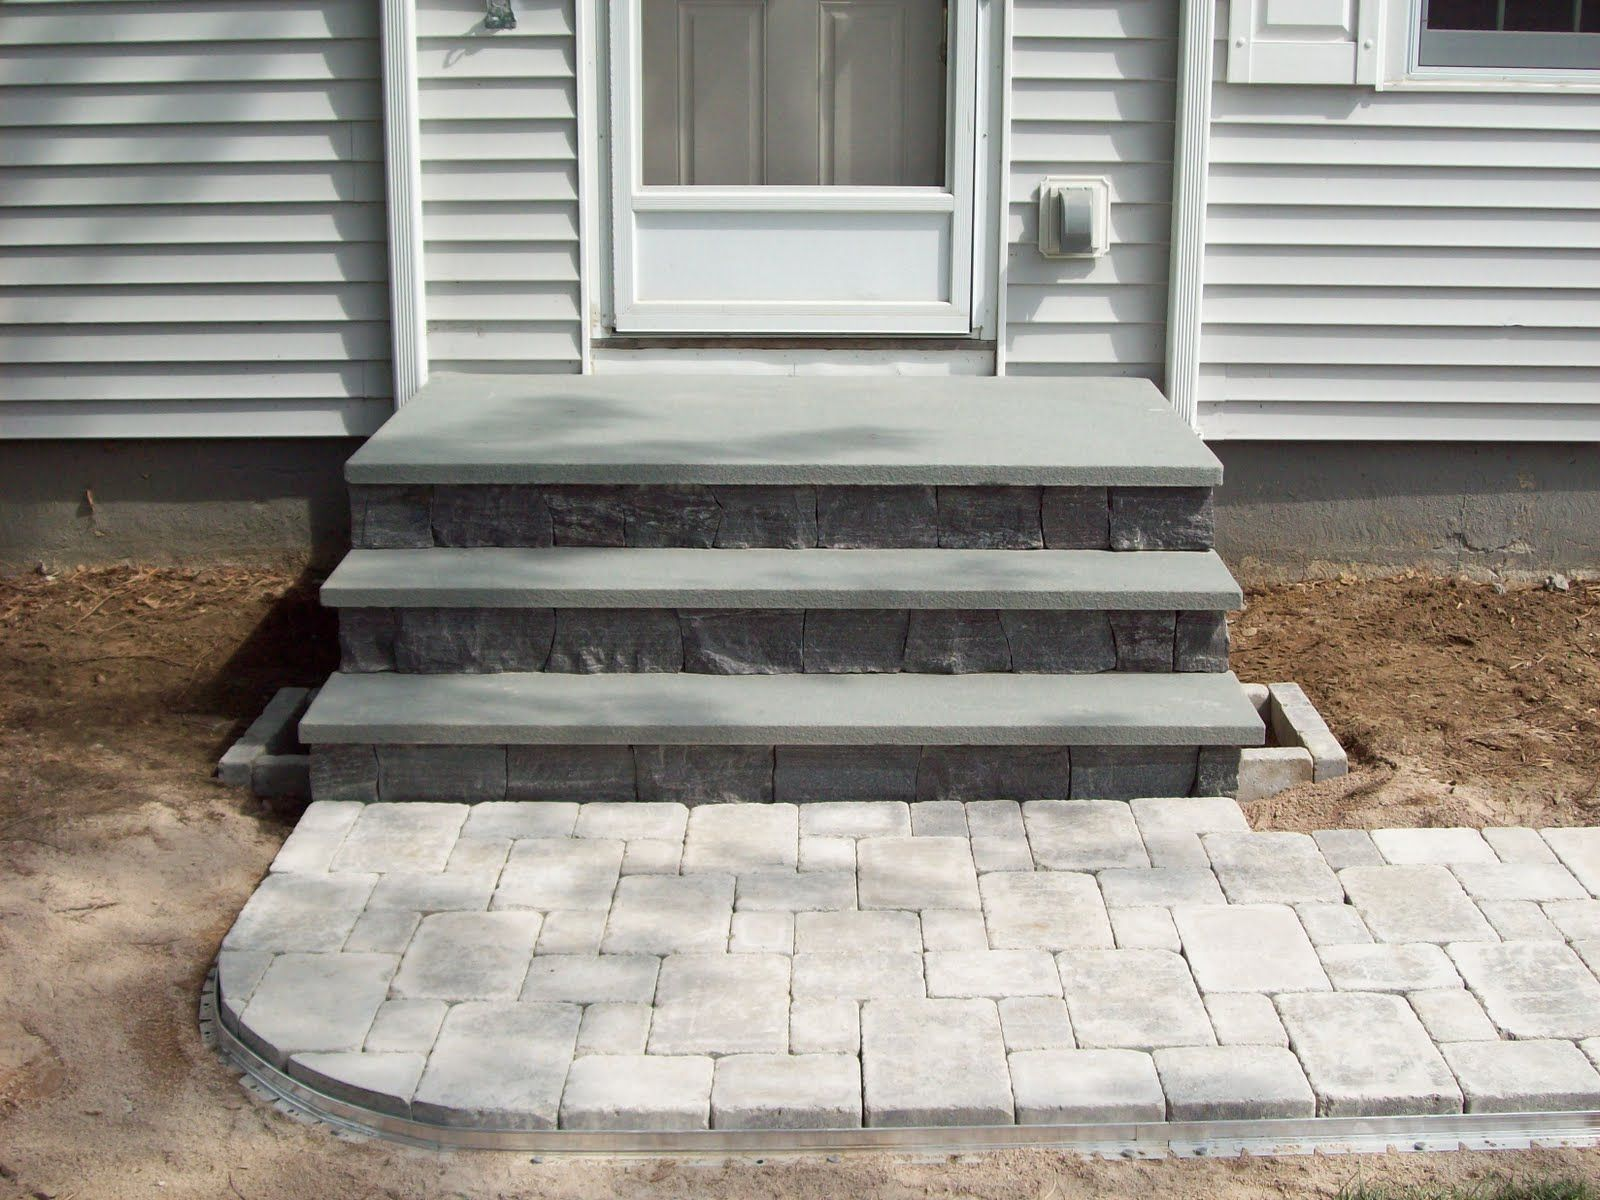 How to build steps with pavers - Back Porch Landing Ideas Steps Plantings And Brussels Block Paver Walk To Driveway